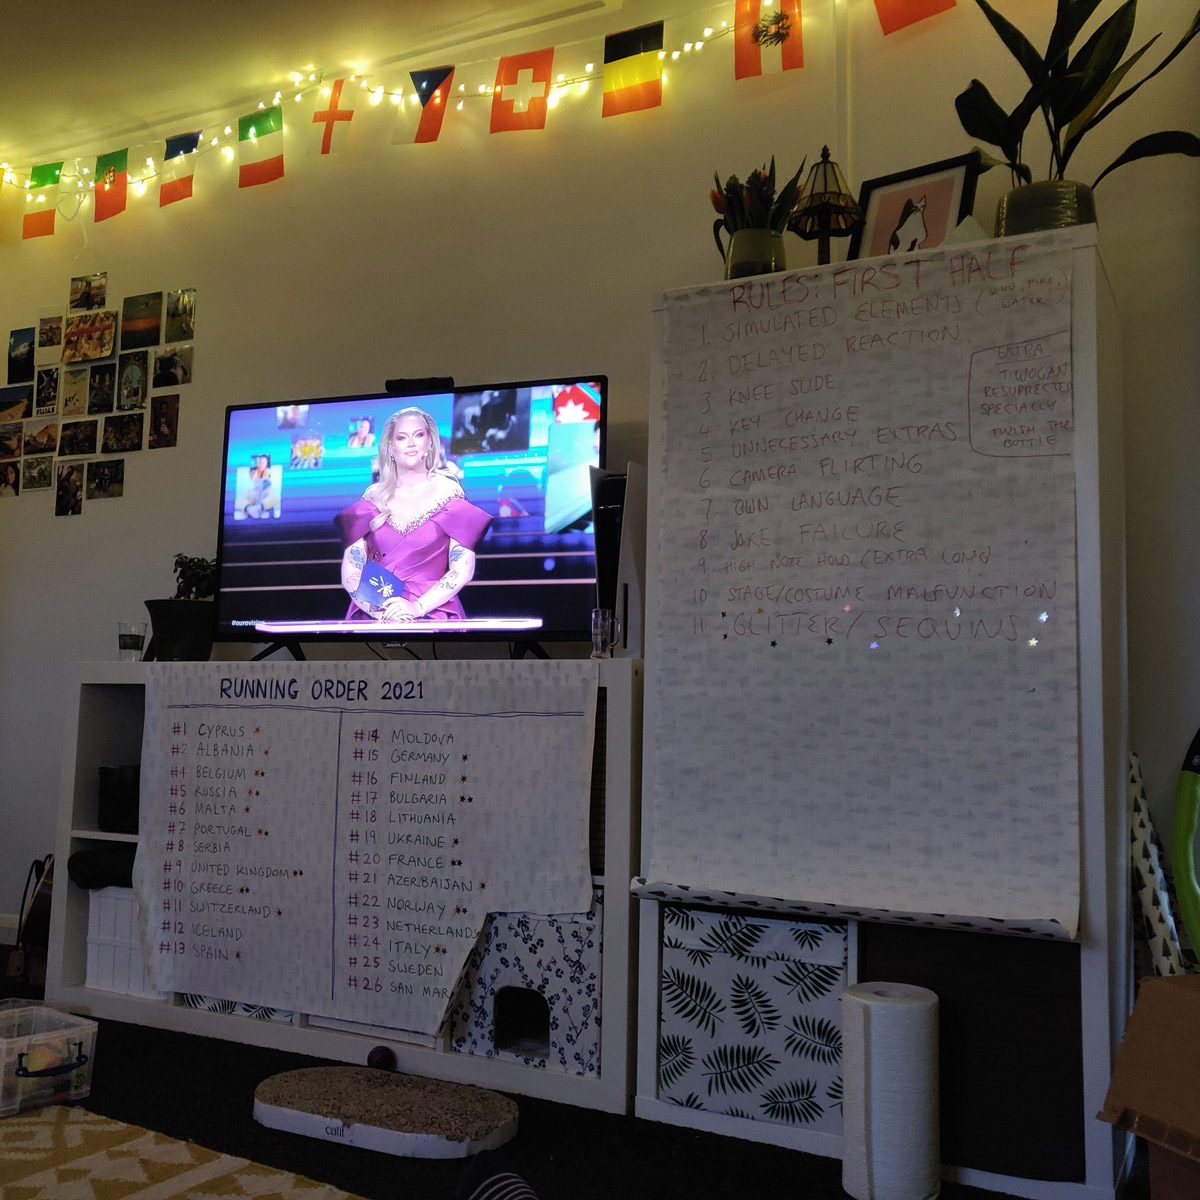 A picture of our TV screen, with Eurovision playing. The running order is pinned to the TV cabinet, and lots of european flags hang across the wall.